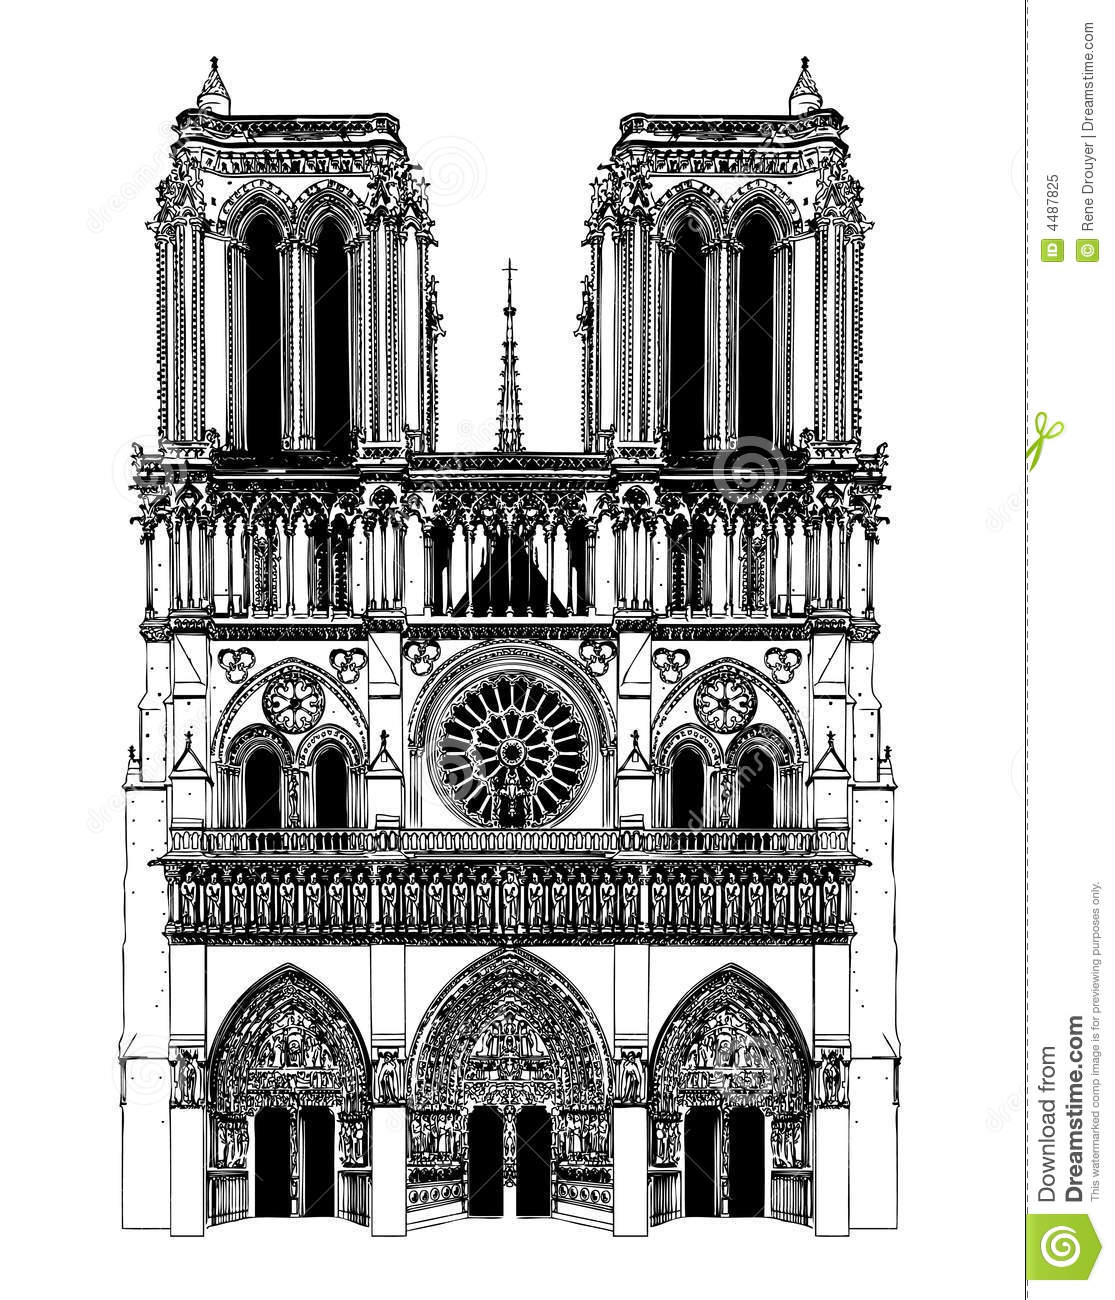 Notre Dame Cathedral (Paris) — a pen and ink drawing by K.P. Singh